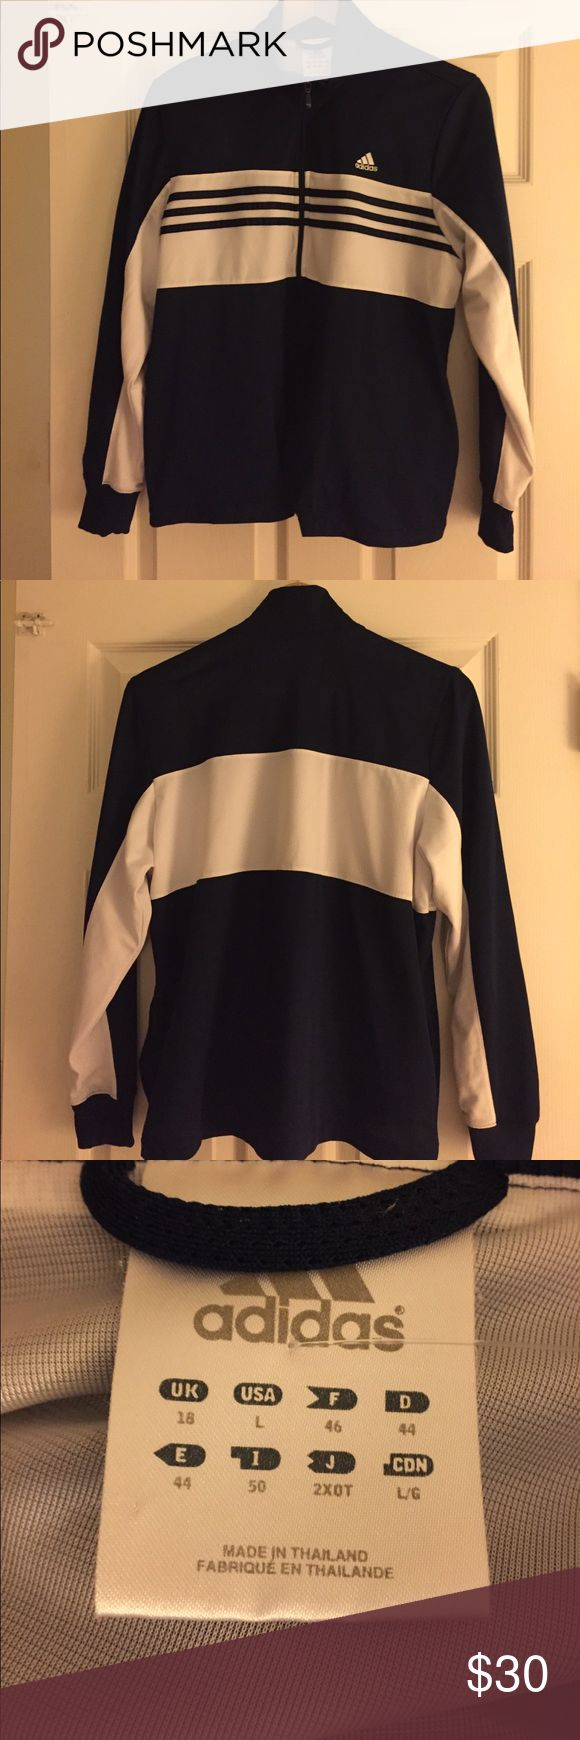 Vintage Addidas Track Jacket Navy blue and white Addidas Track Jacket. Zips up front. Size Large. 2 pockets. adidas Jackets & Coats